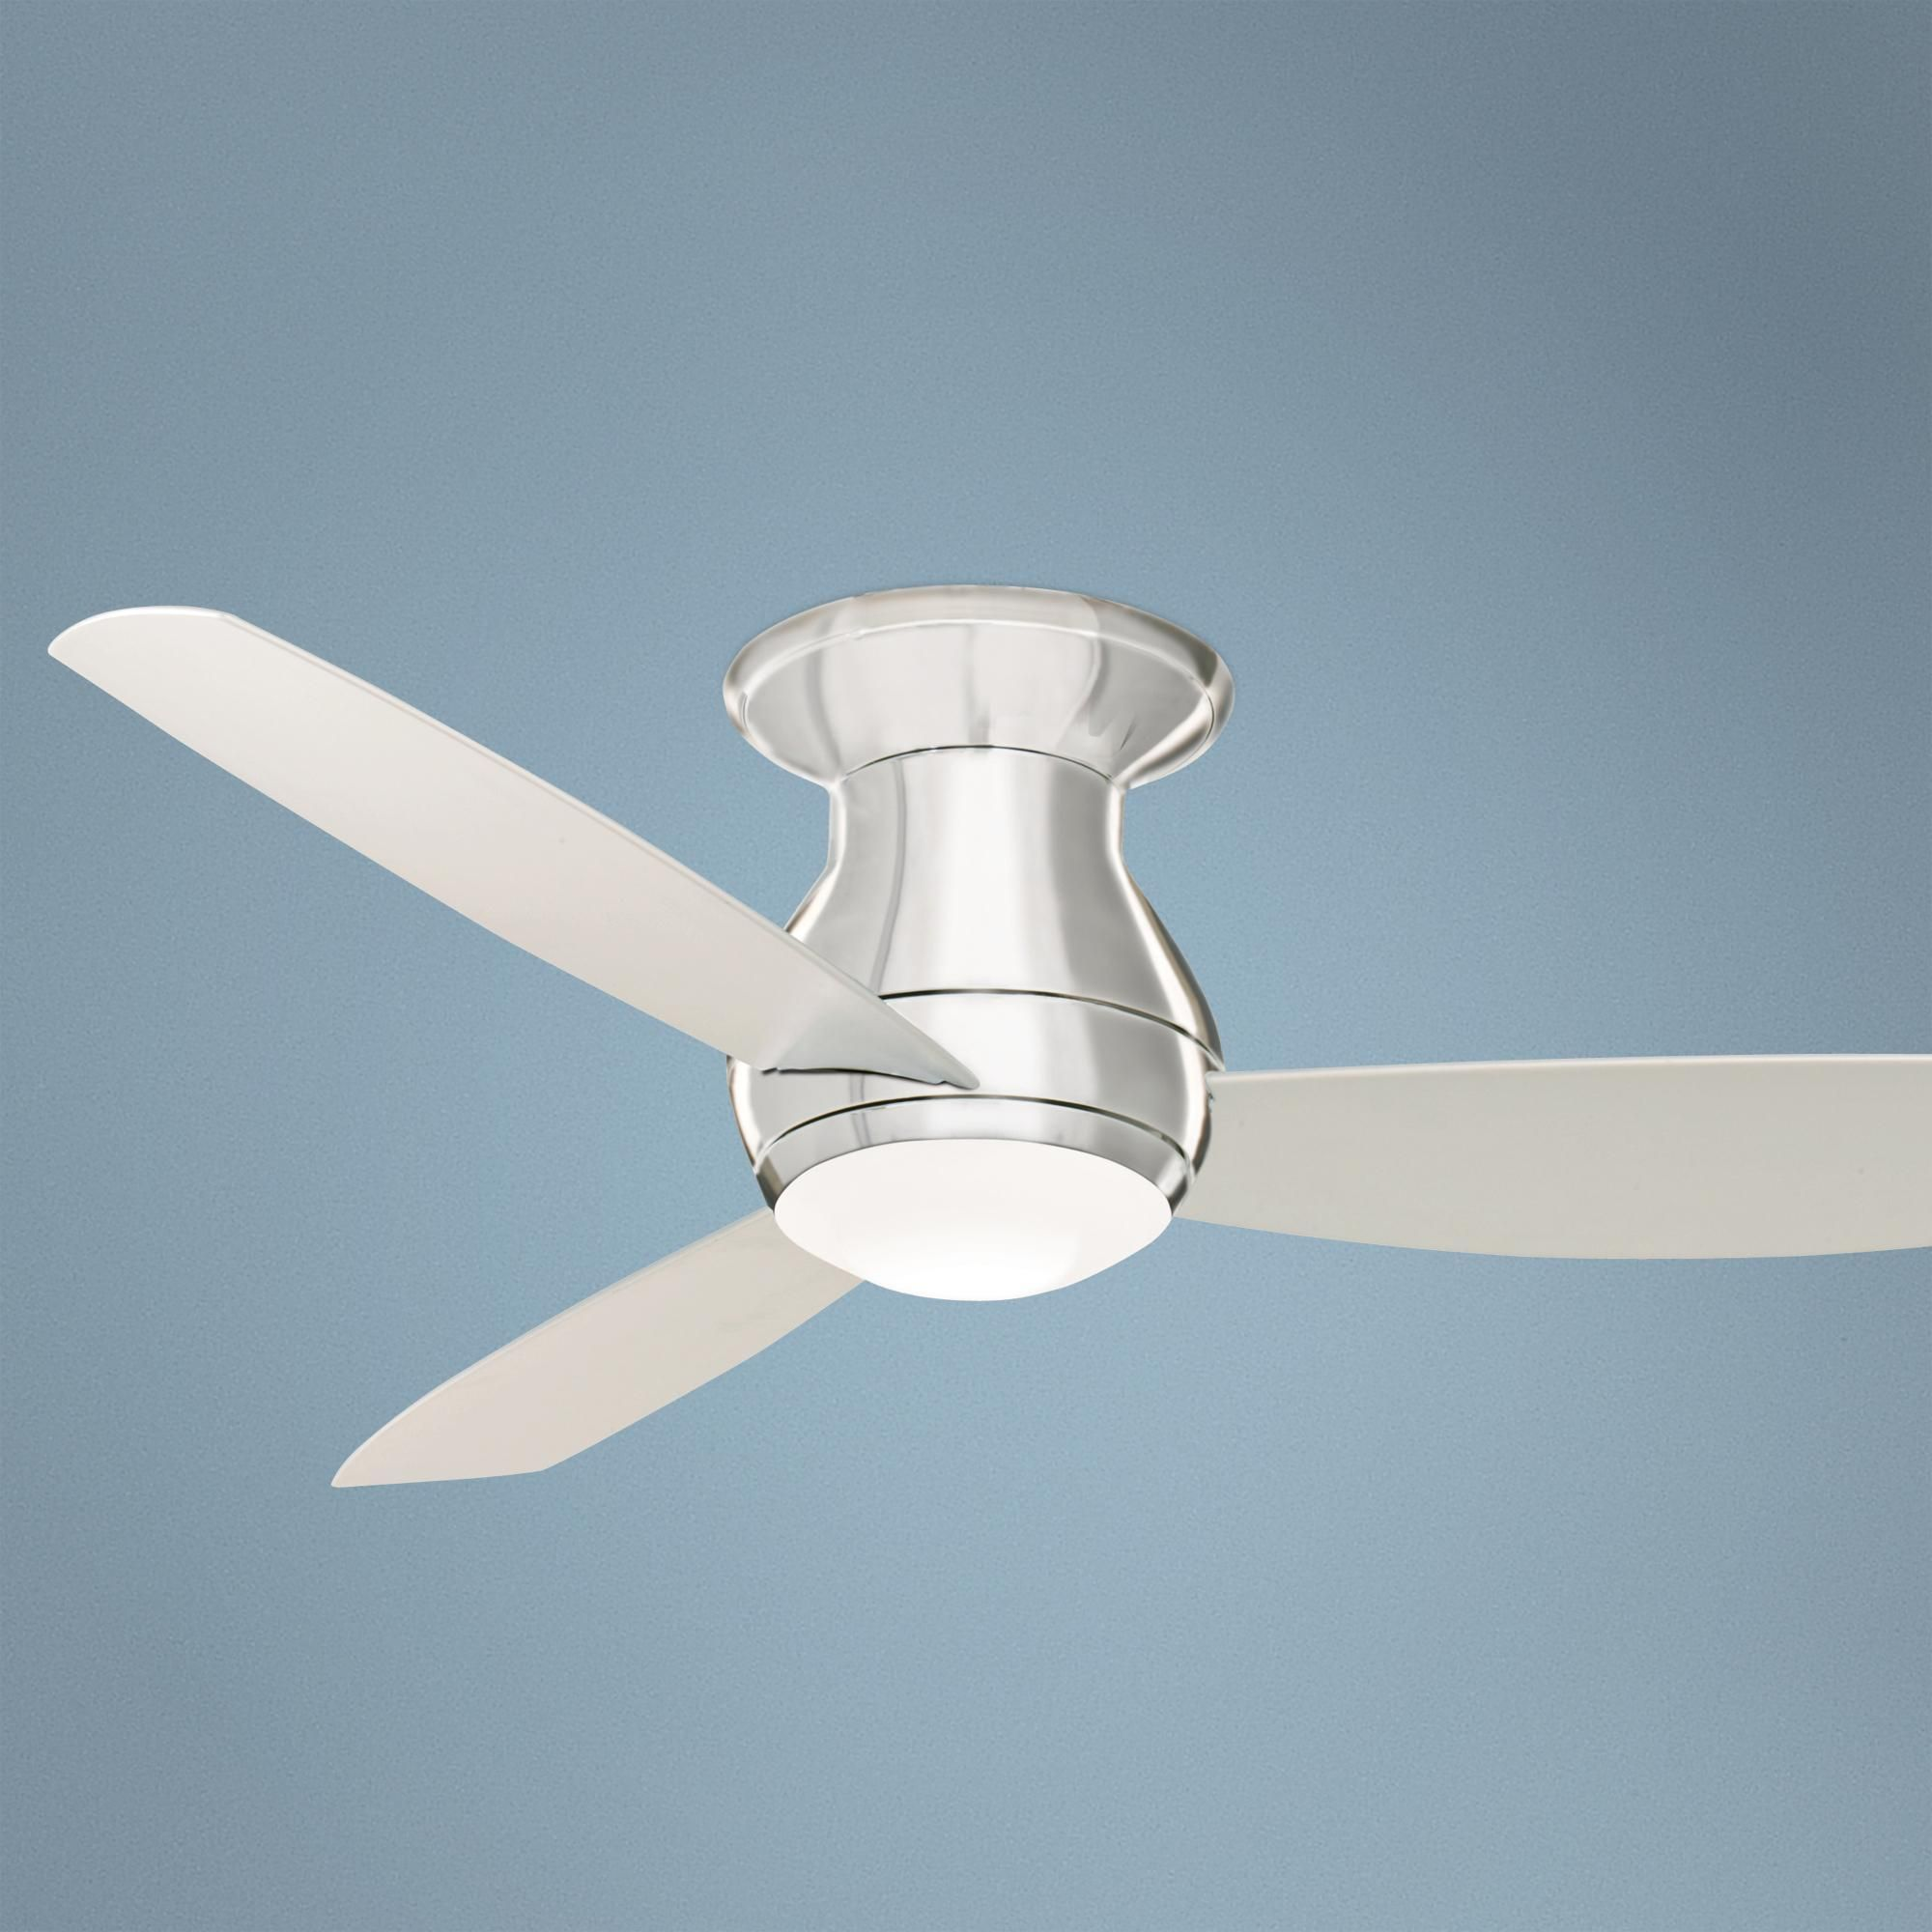 Emerson Cf152bs Curva Sky Indoor Outdoor Ceiling Fan 52 Inch Blade Span Brushed Steel Finish And All W With Images Ceiling Fan Emerson Ceiling Fan Ceiling Fan With Light